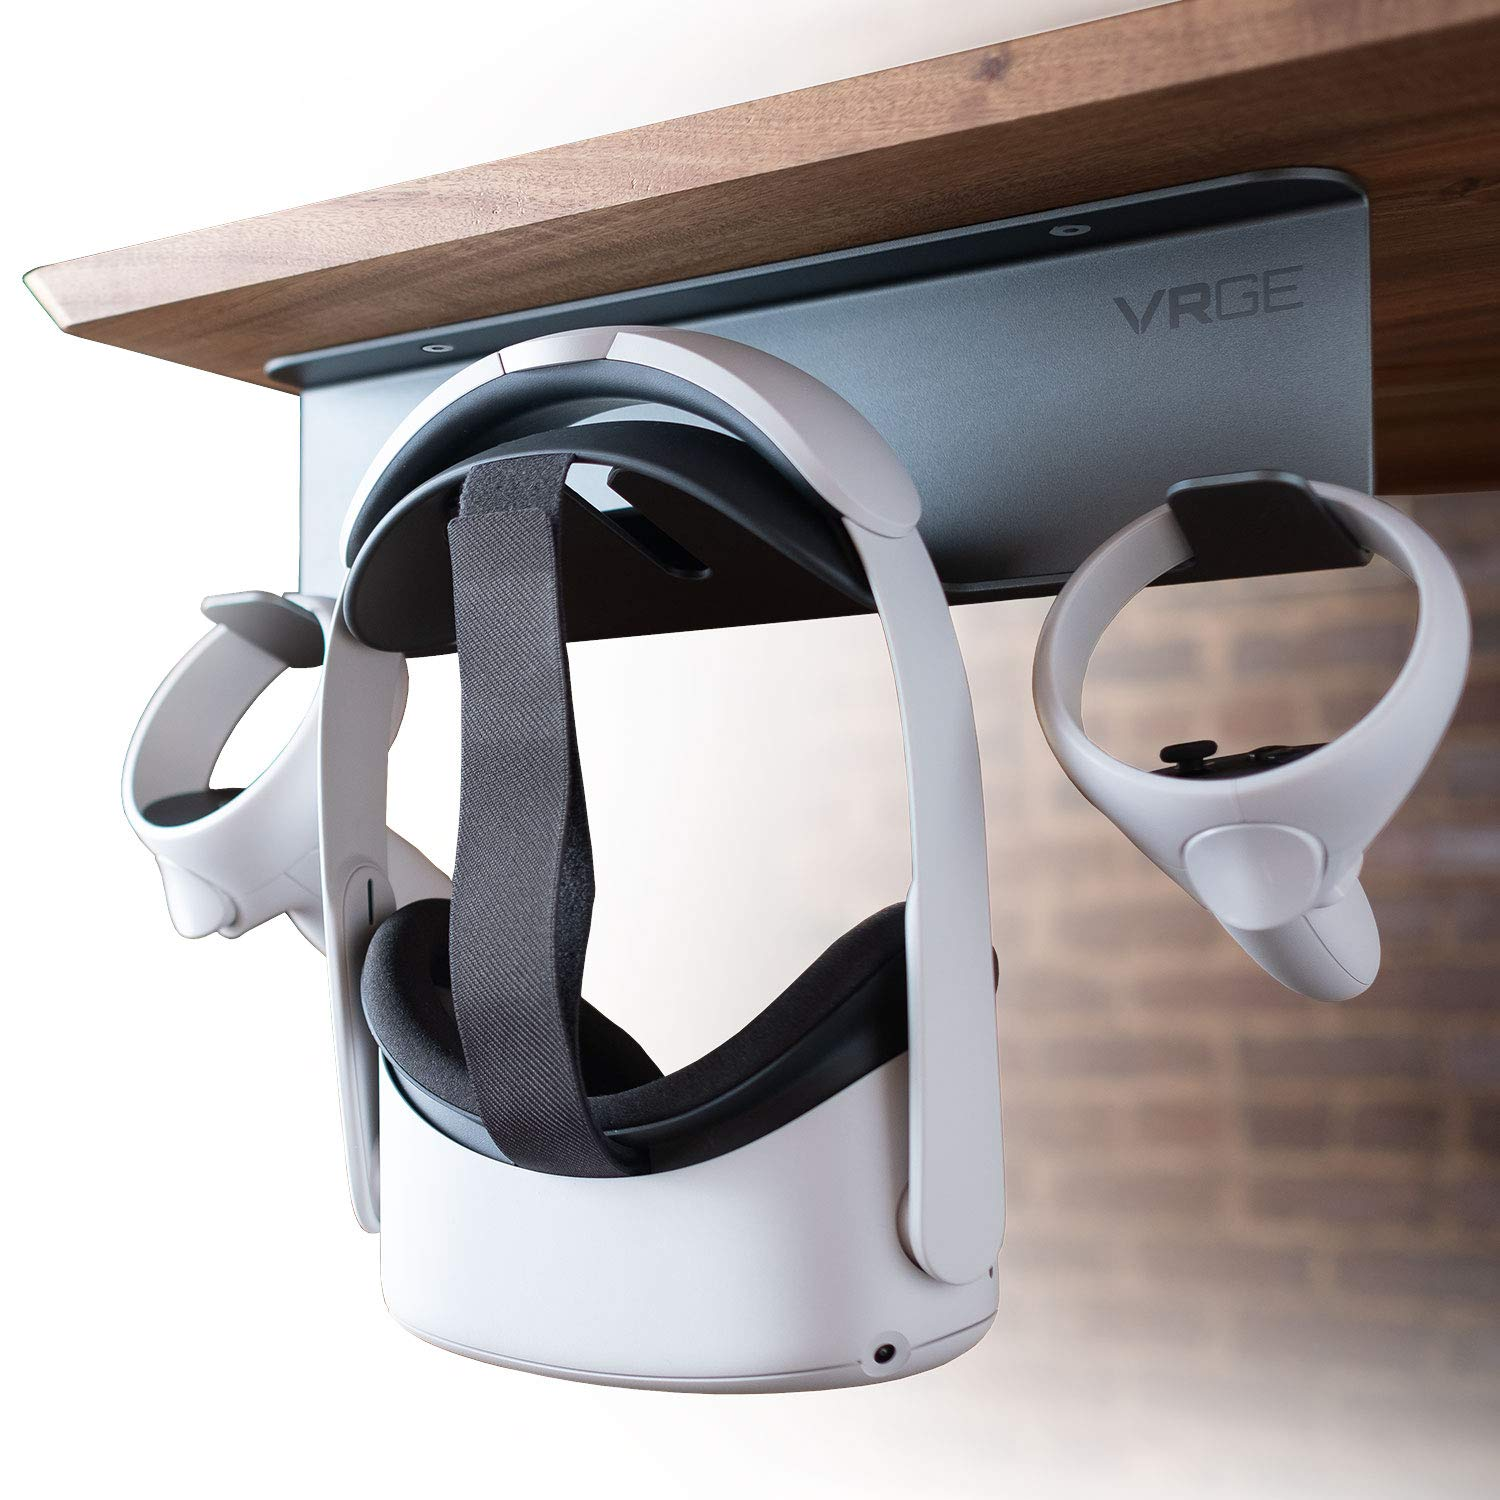 VRGE VR Stand Under Desk Storage Display Hook Organizer - Premium Metal - For Oculus Rift Oculus Rift S Quest 2, HTC Vive, Vive Pro, Playstation VR, Valve Index, Vive Cosmos and Mixed Reality Headsets